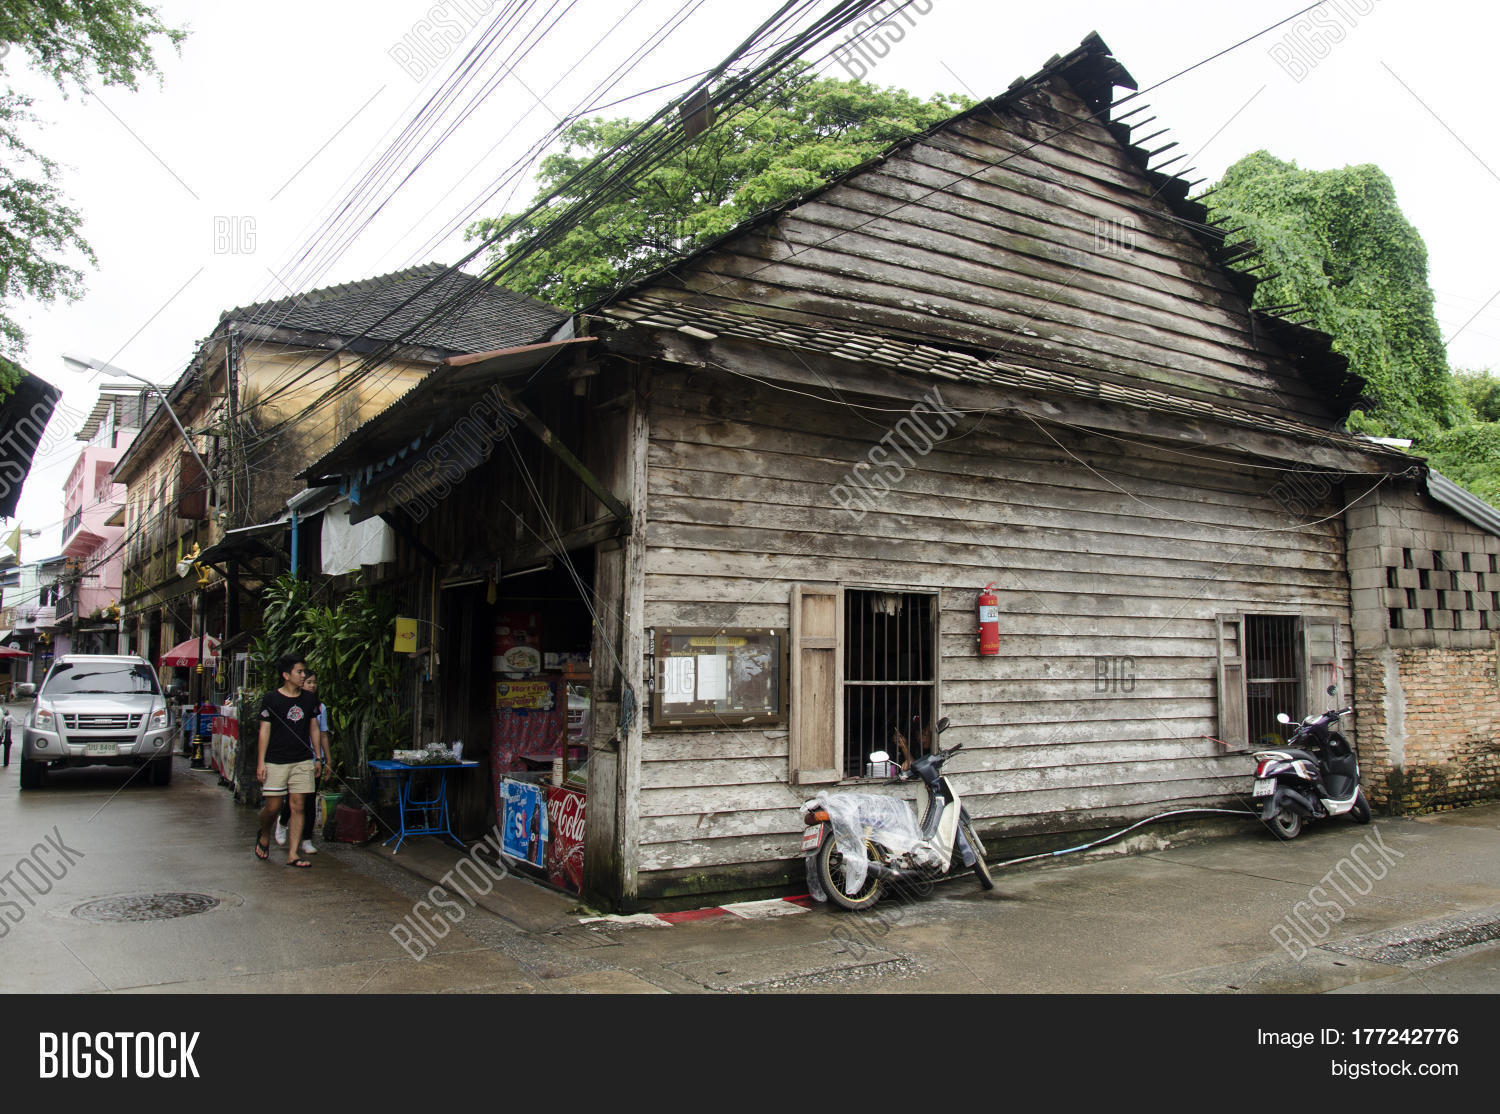 Classic old house old town image photo bigstock for Old house classics